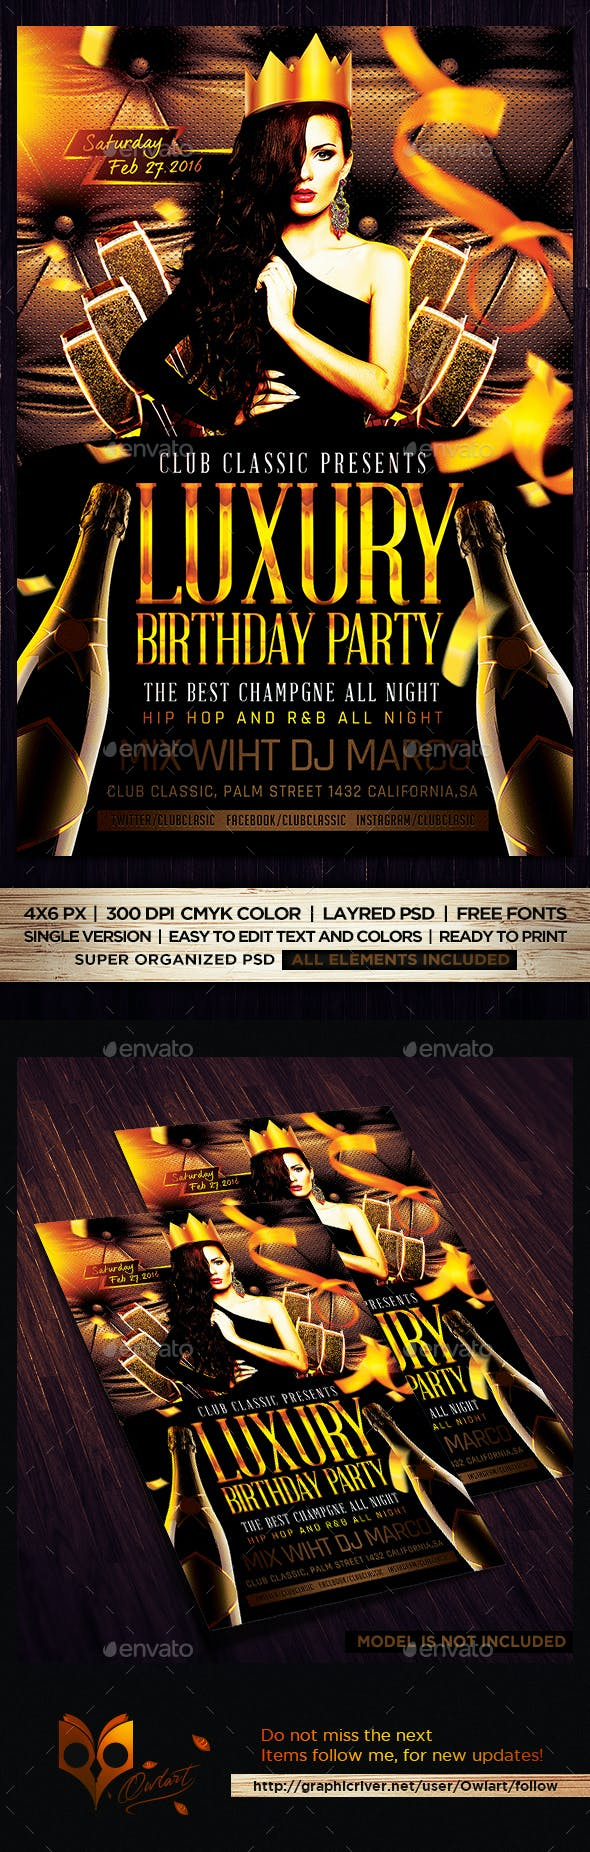 Luxury Birthday Party Flyer Template Psd By Owlart Graphicriver